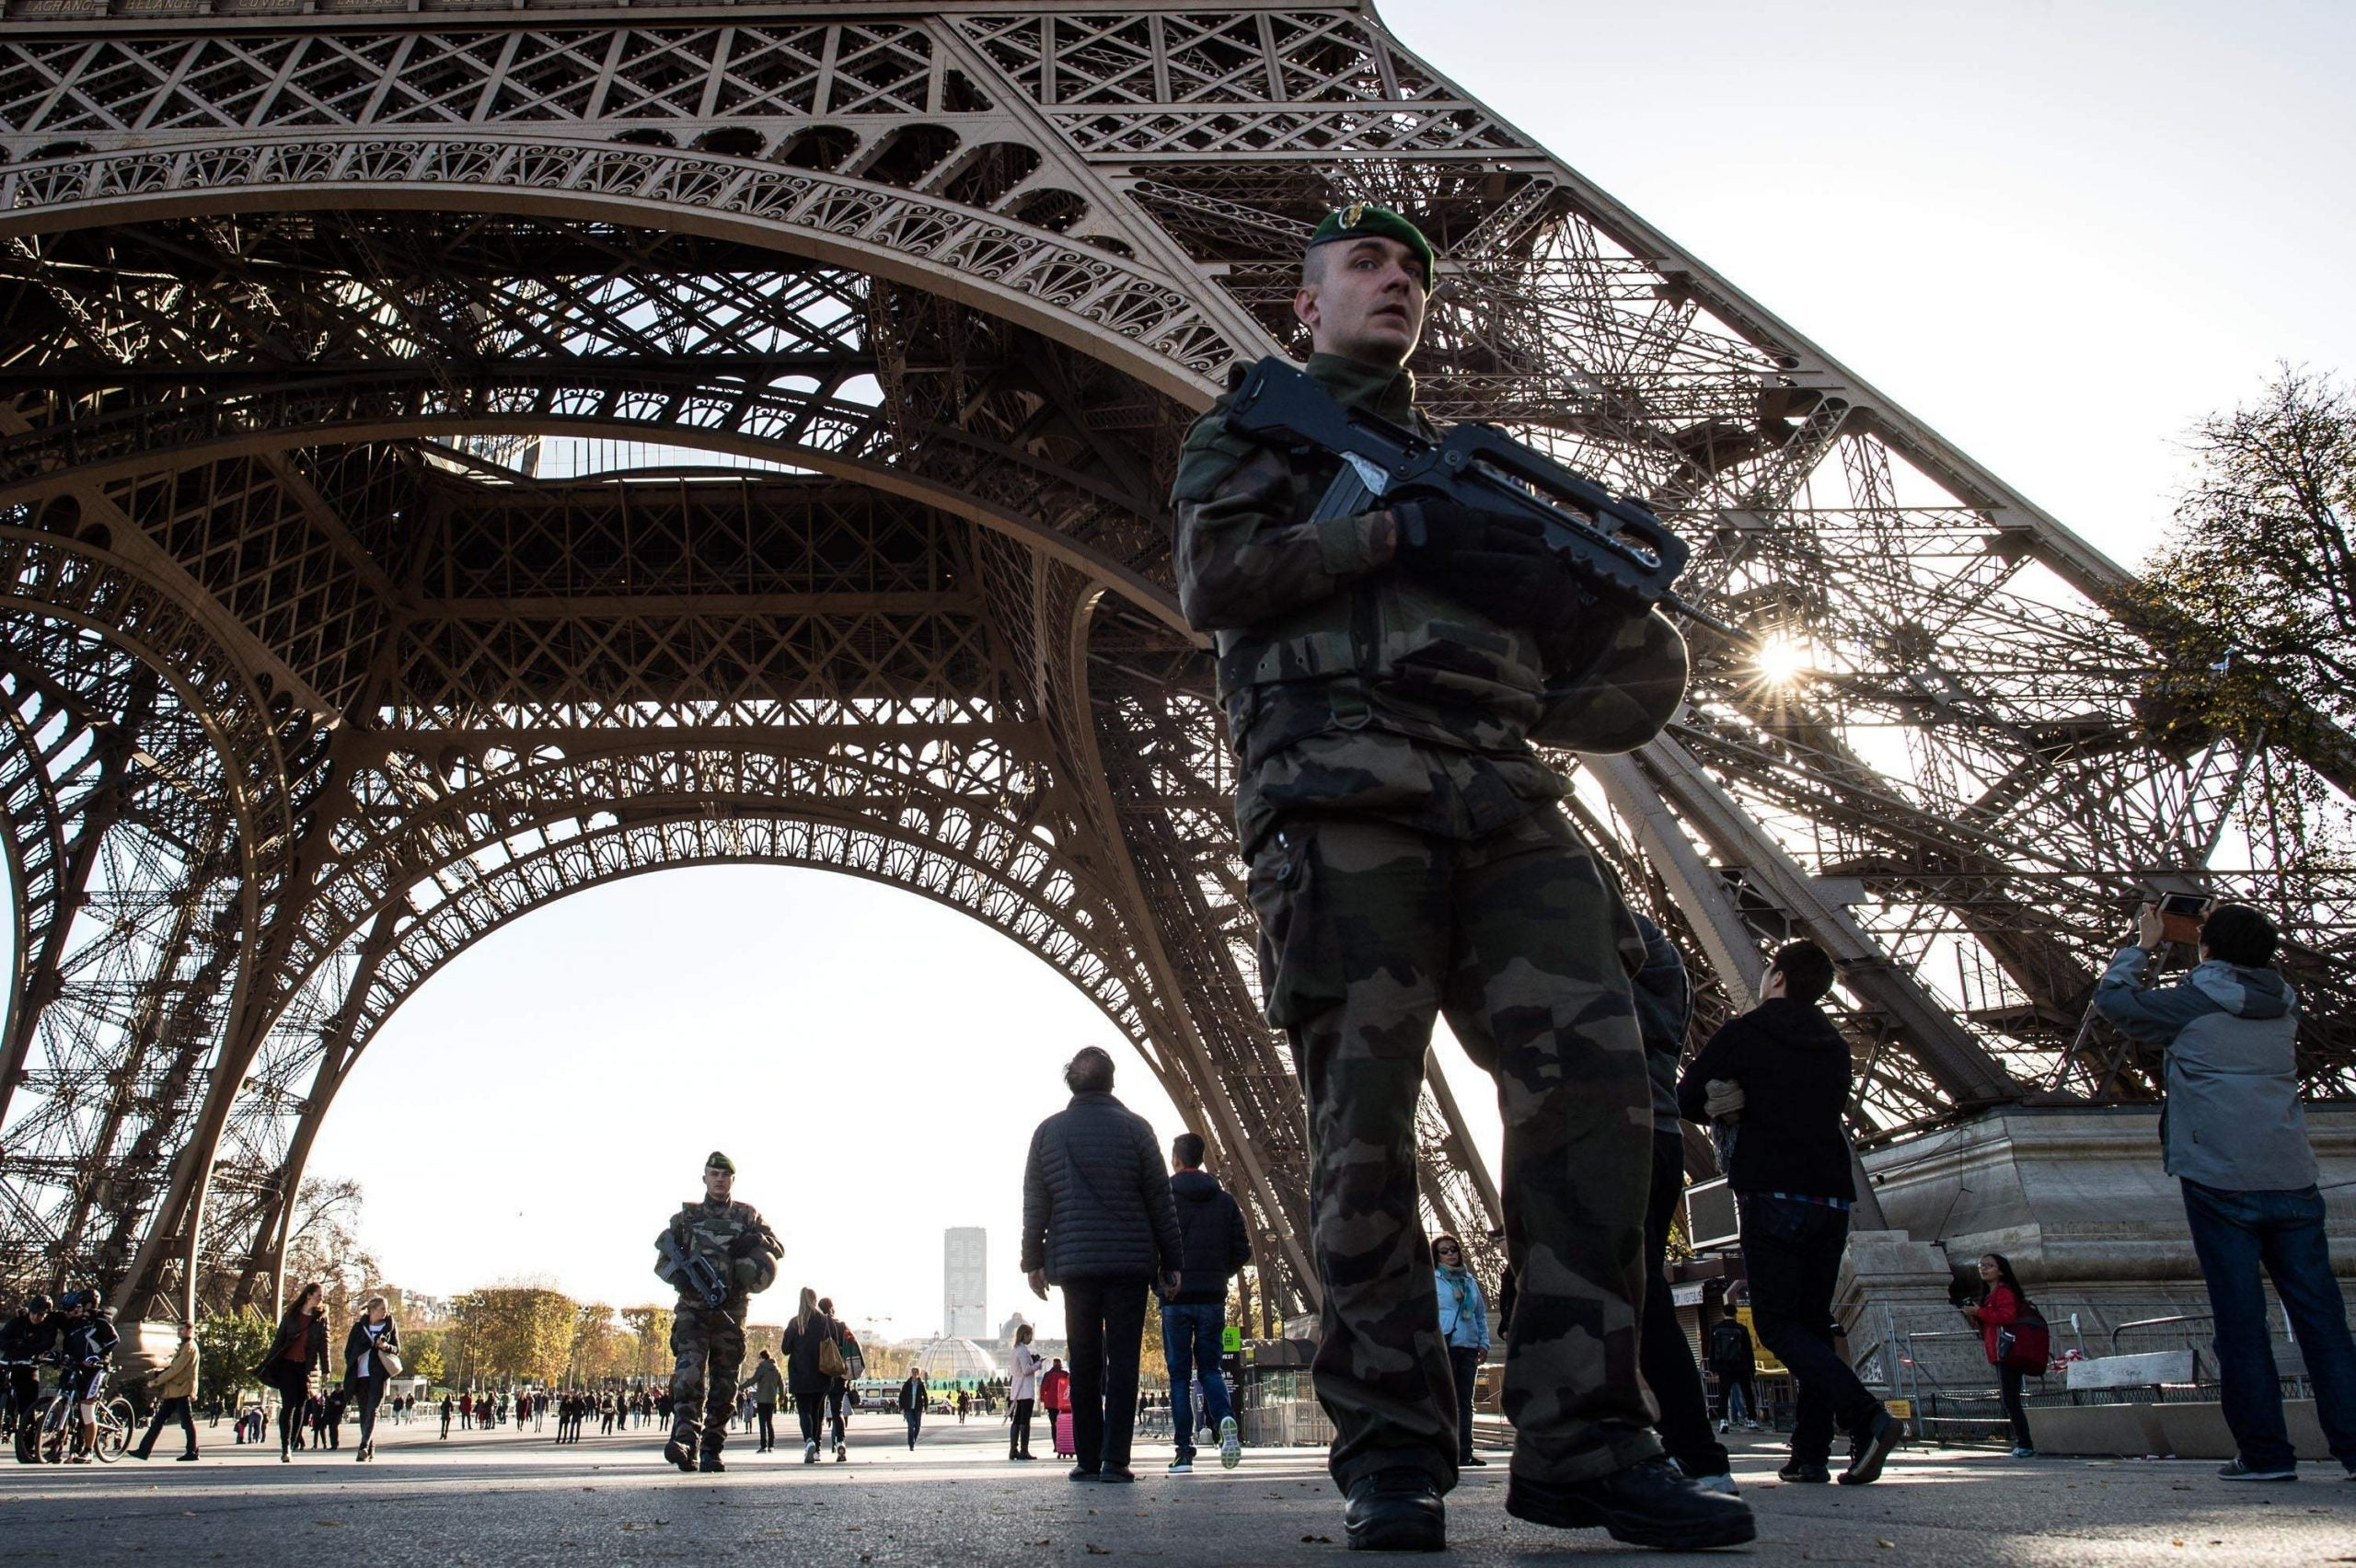 France is changing: an army stalks the streets and Boris Johnson wanders the Tuileries